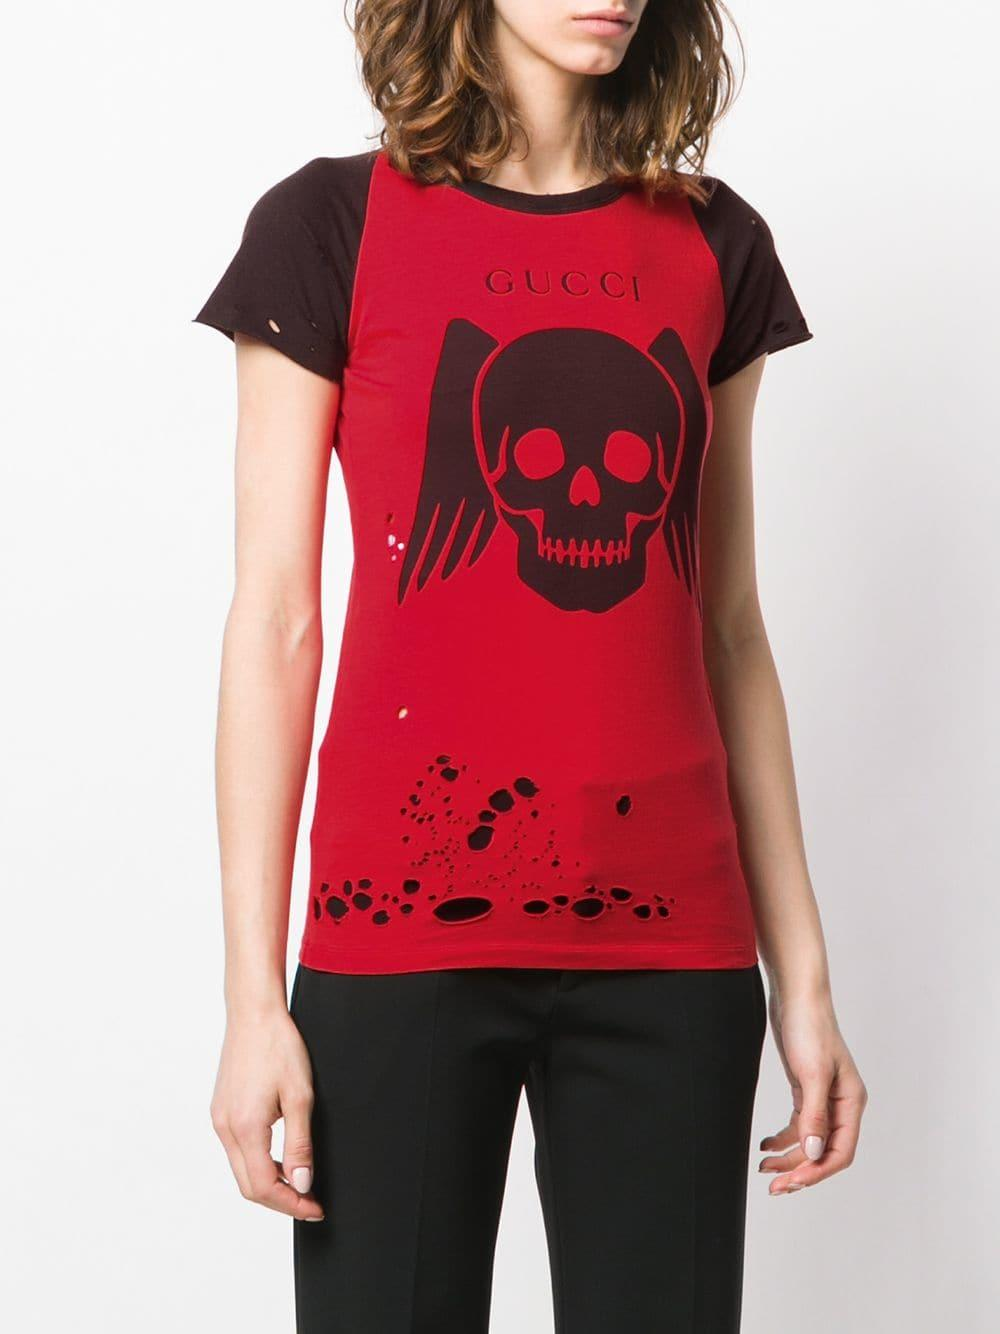 4ecdf14c Gucci - Red Ripped Contrast Graphic T-shirt - Lyst. View fullscreen